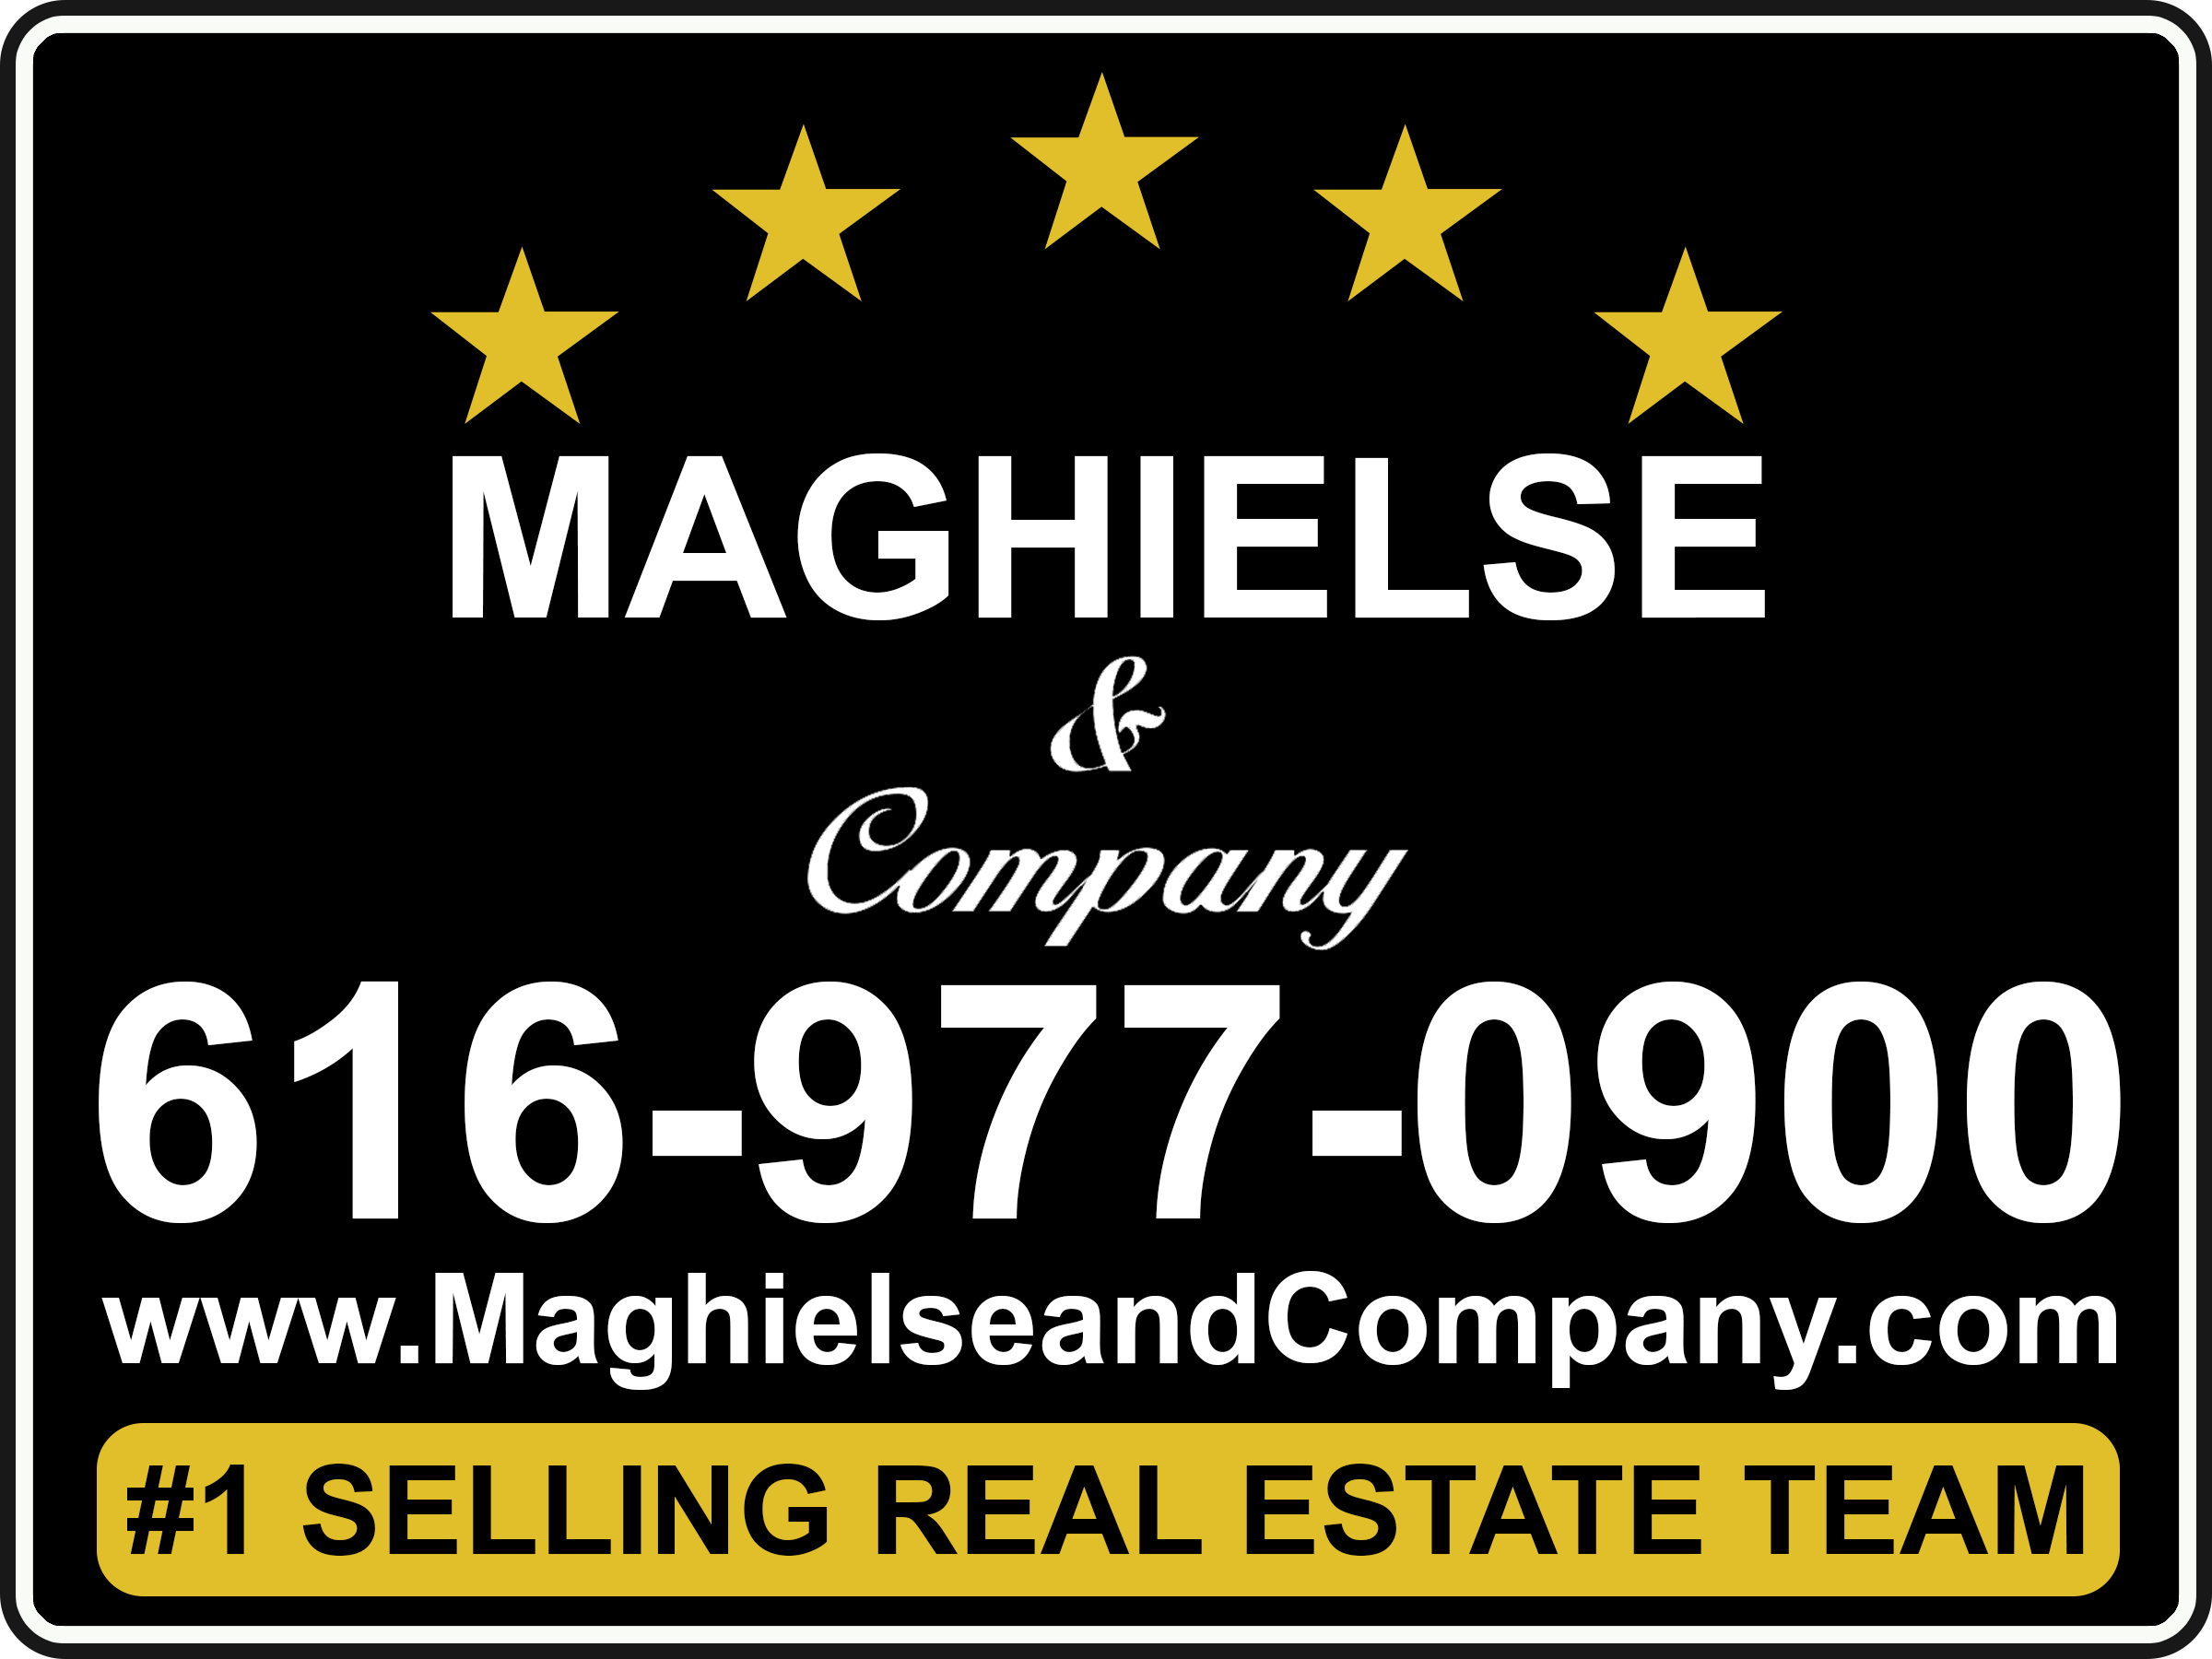 Real Estate with Maghielse & Company, LLC